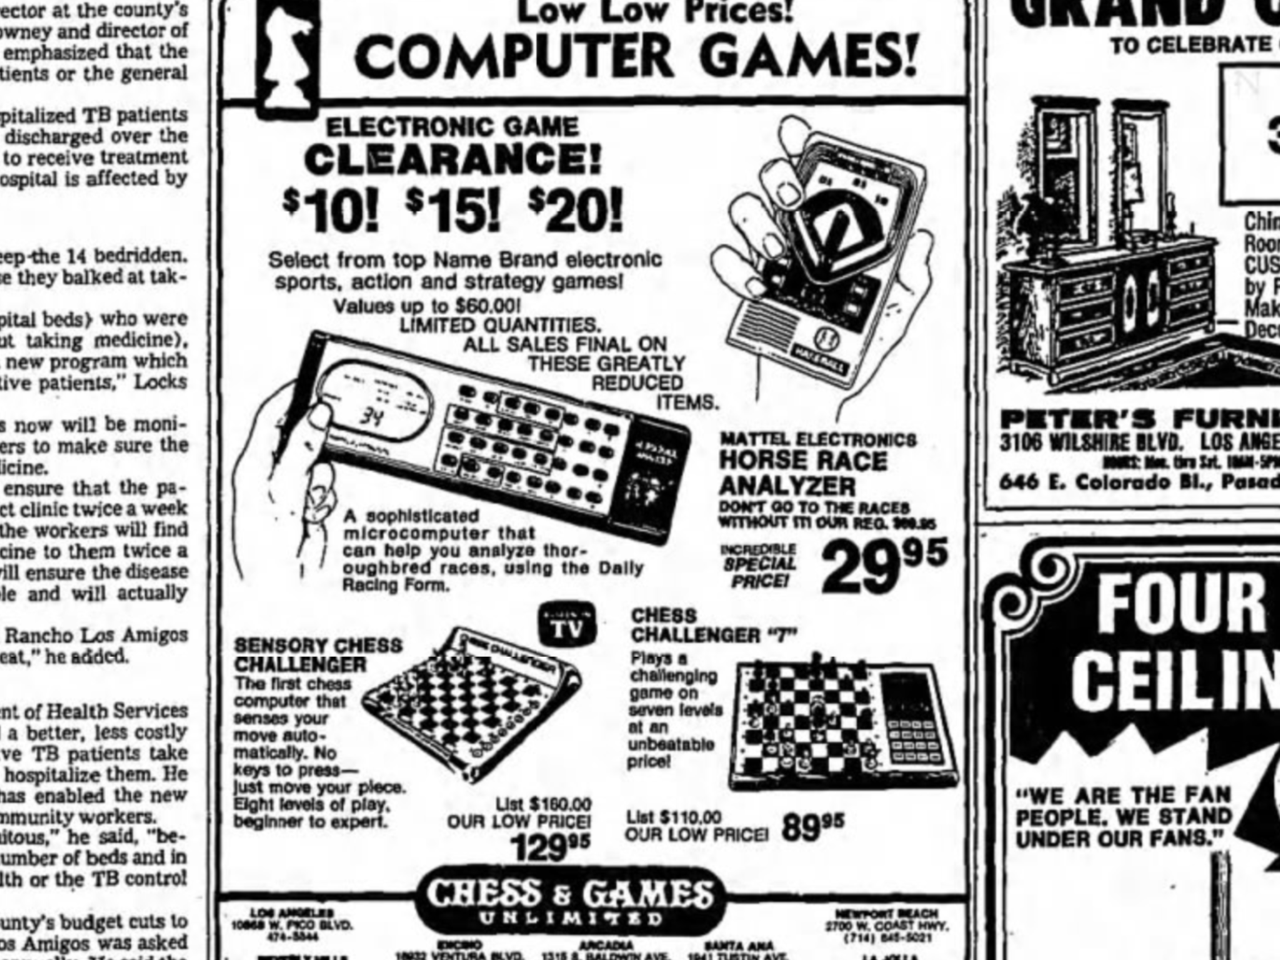 1981 advertisement from the LA Times